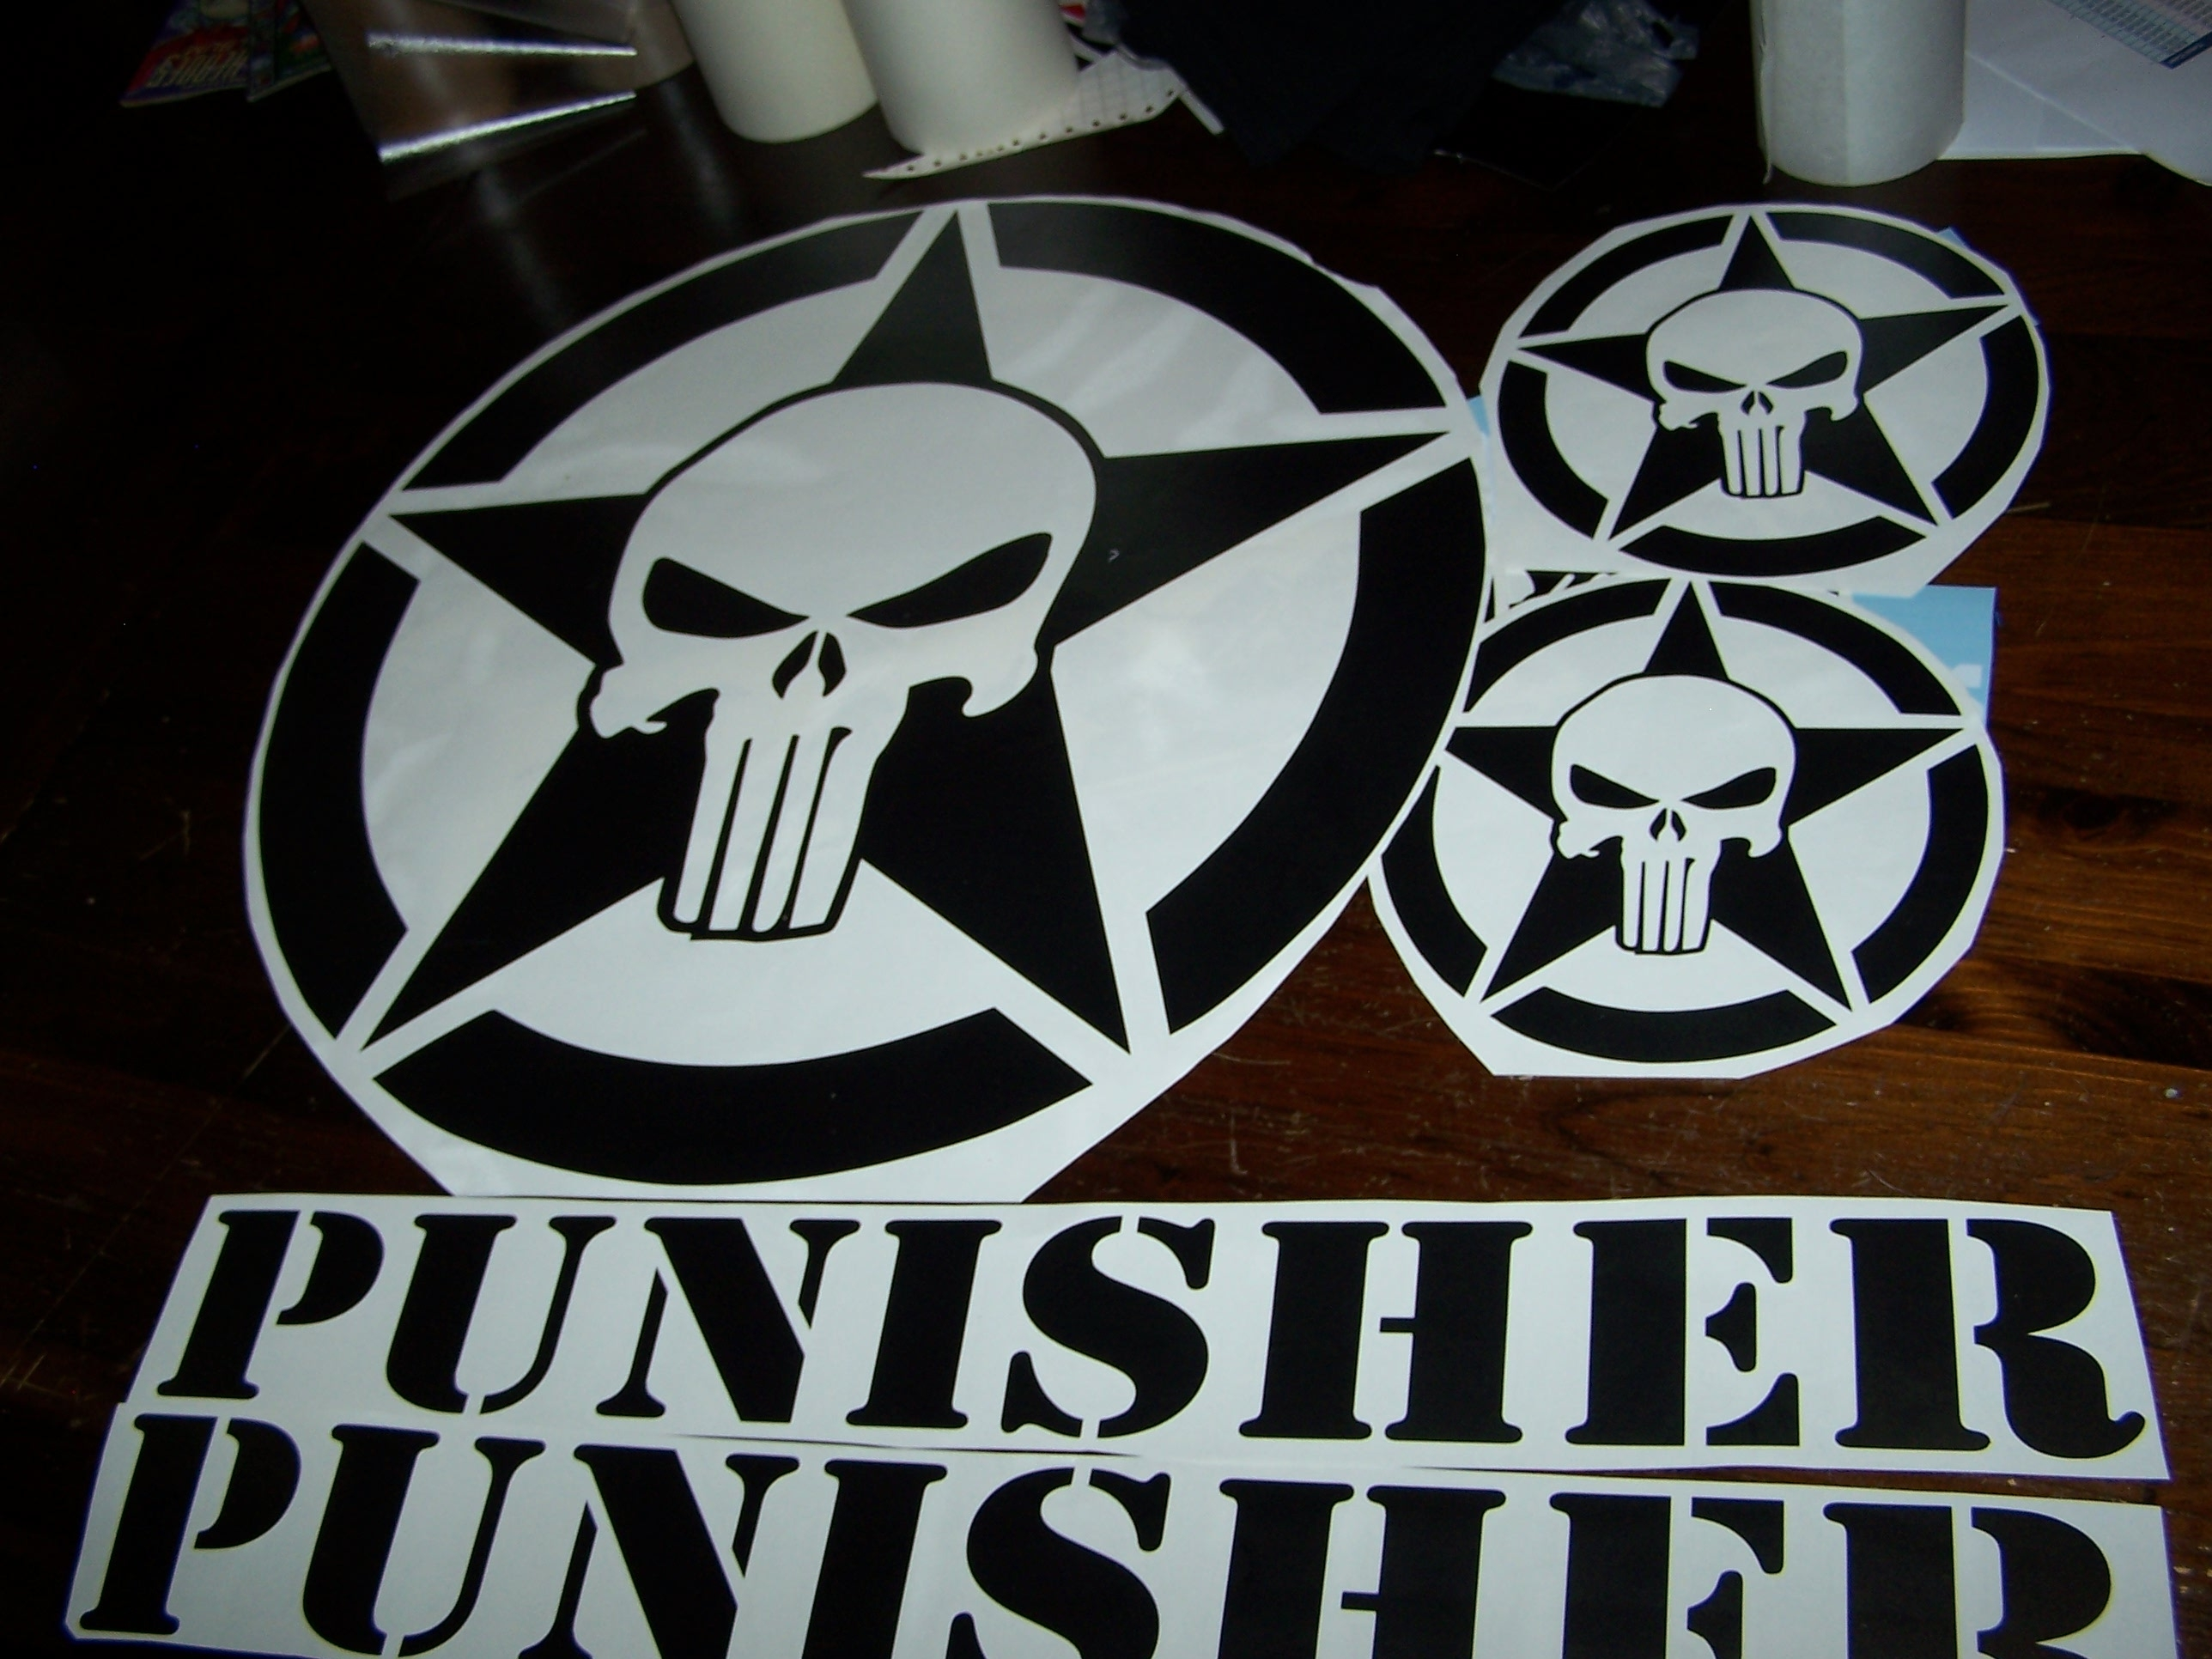 Jeep punisher star edition vinyl decal set jk tj cj yj xj zj wj